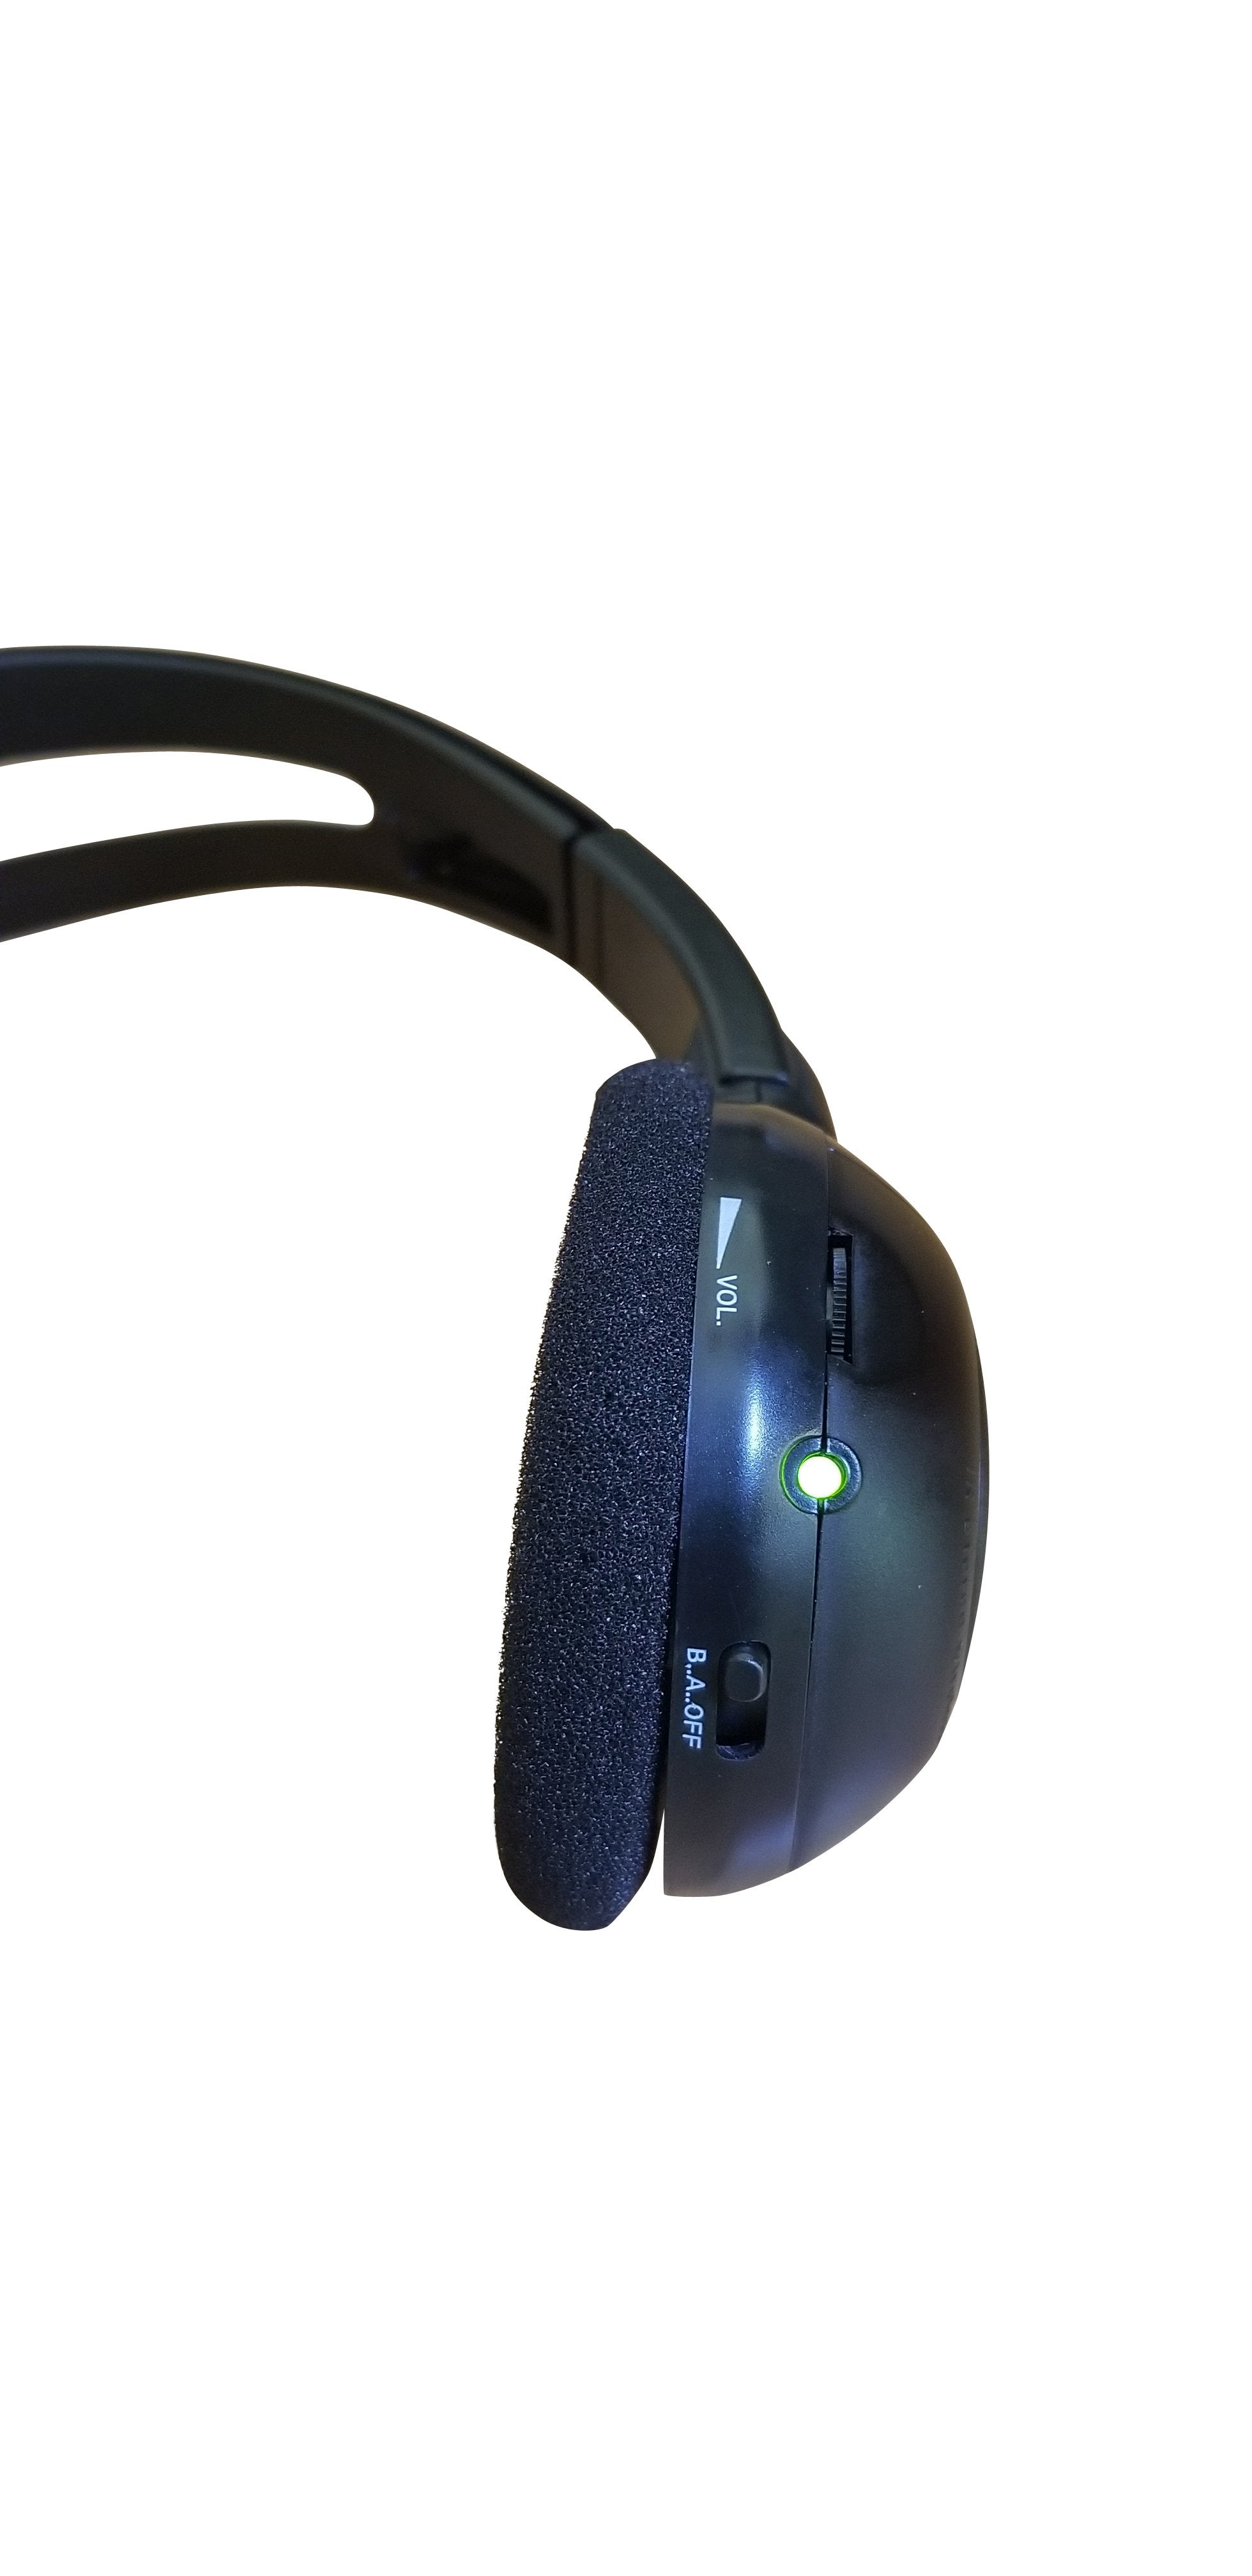 2008 Chevy Trailblazer Wireless DVD Headphone